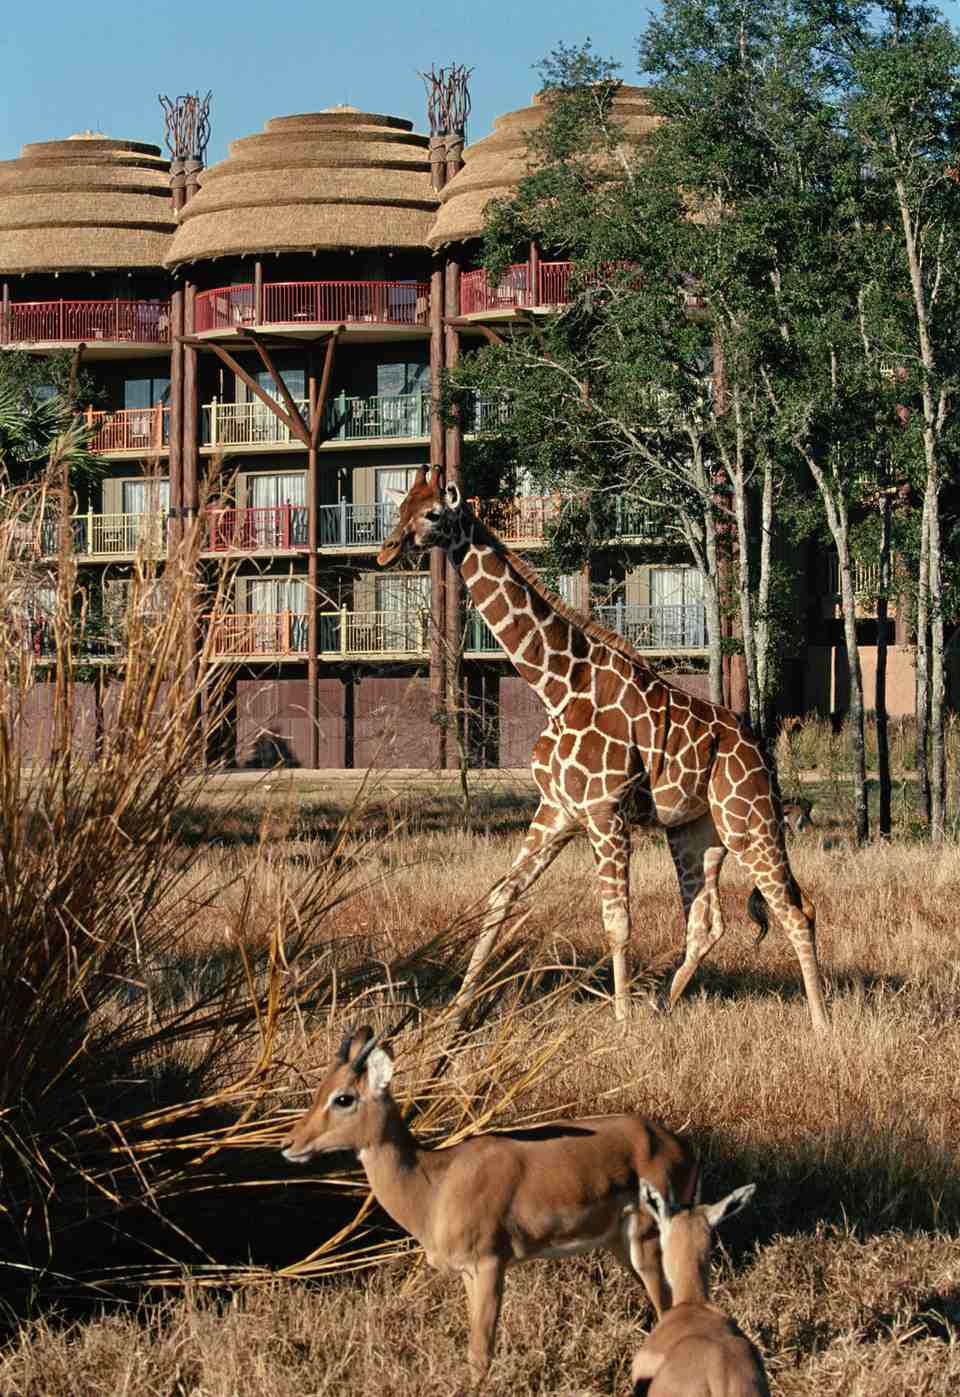 Giraffe and other exotic animals roaming savanah at Disney's Animal Kingdom Lodge.